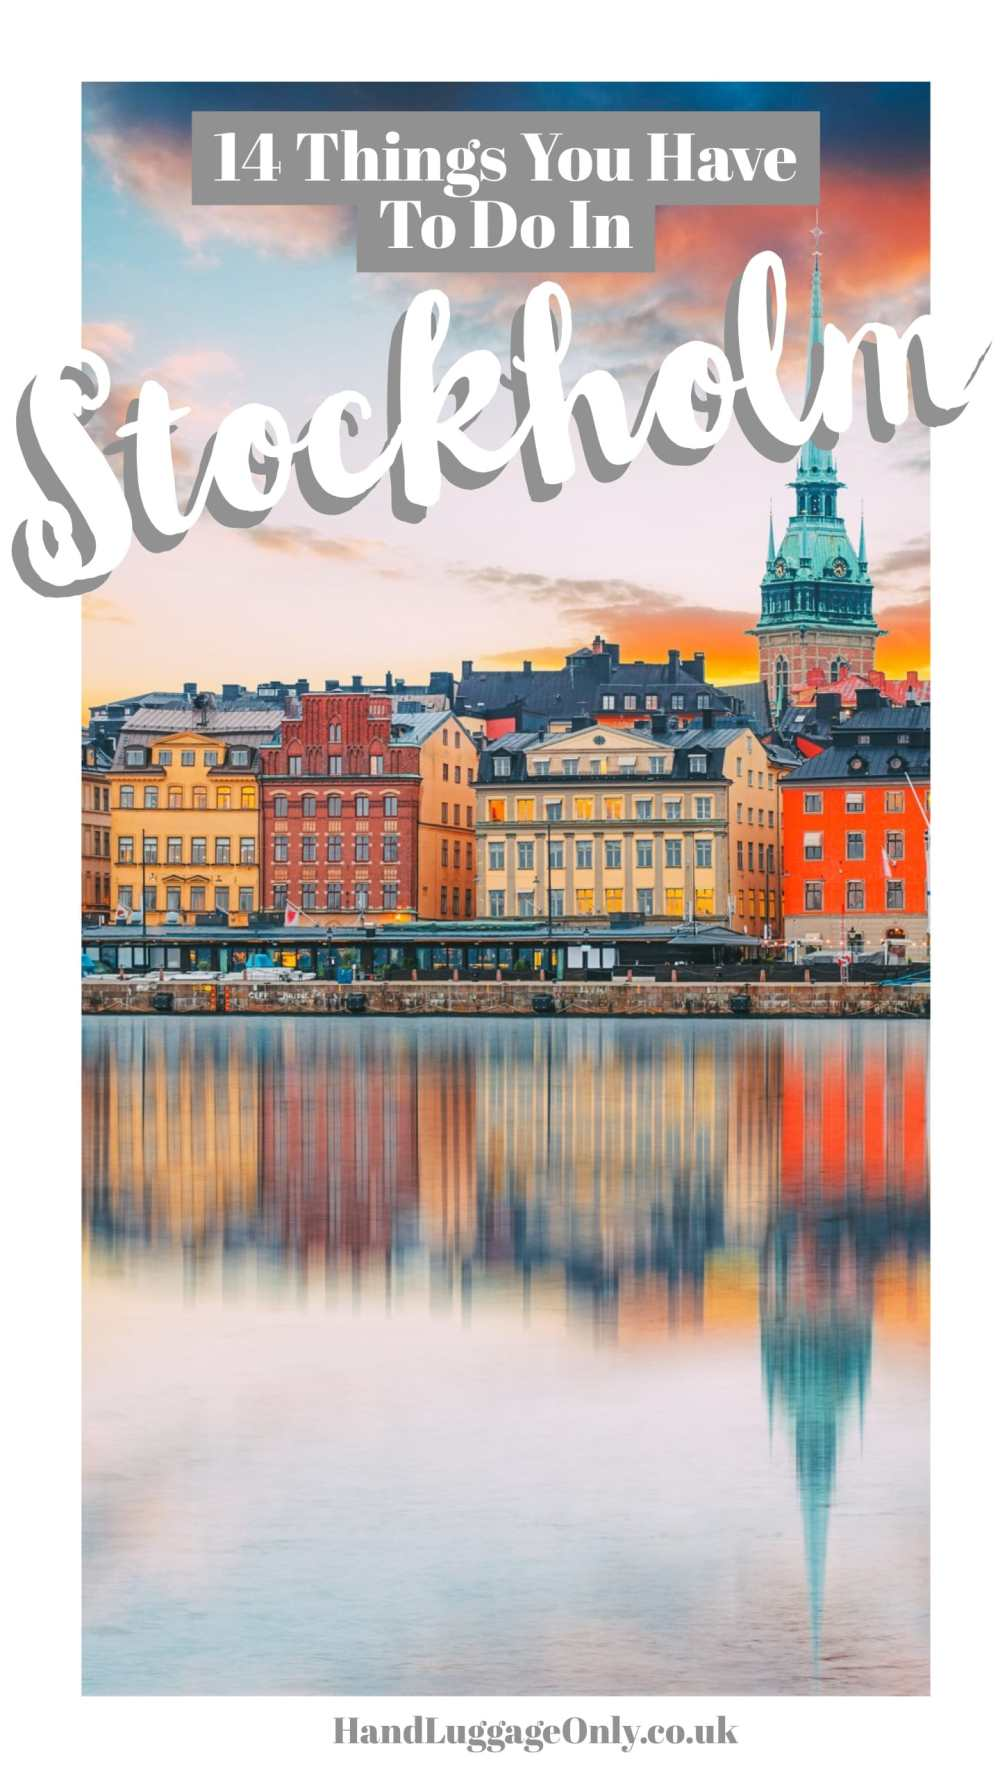 14 Things You Have To Do In Stockholm, Sweden (1)